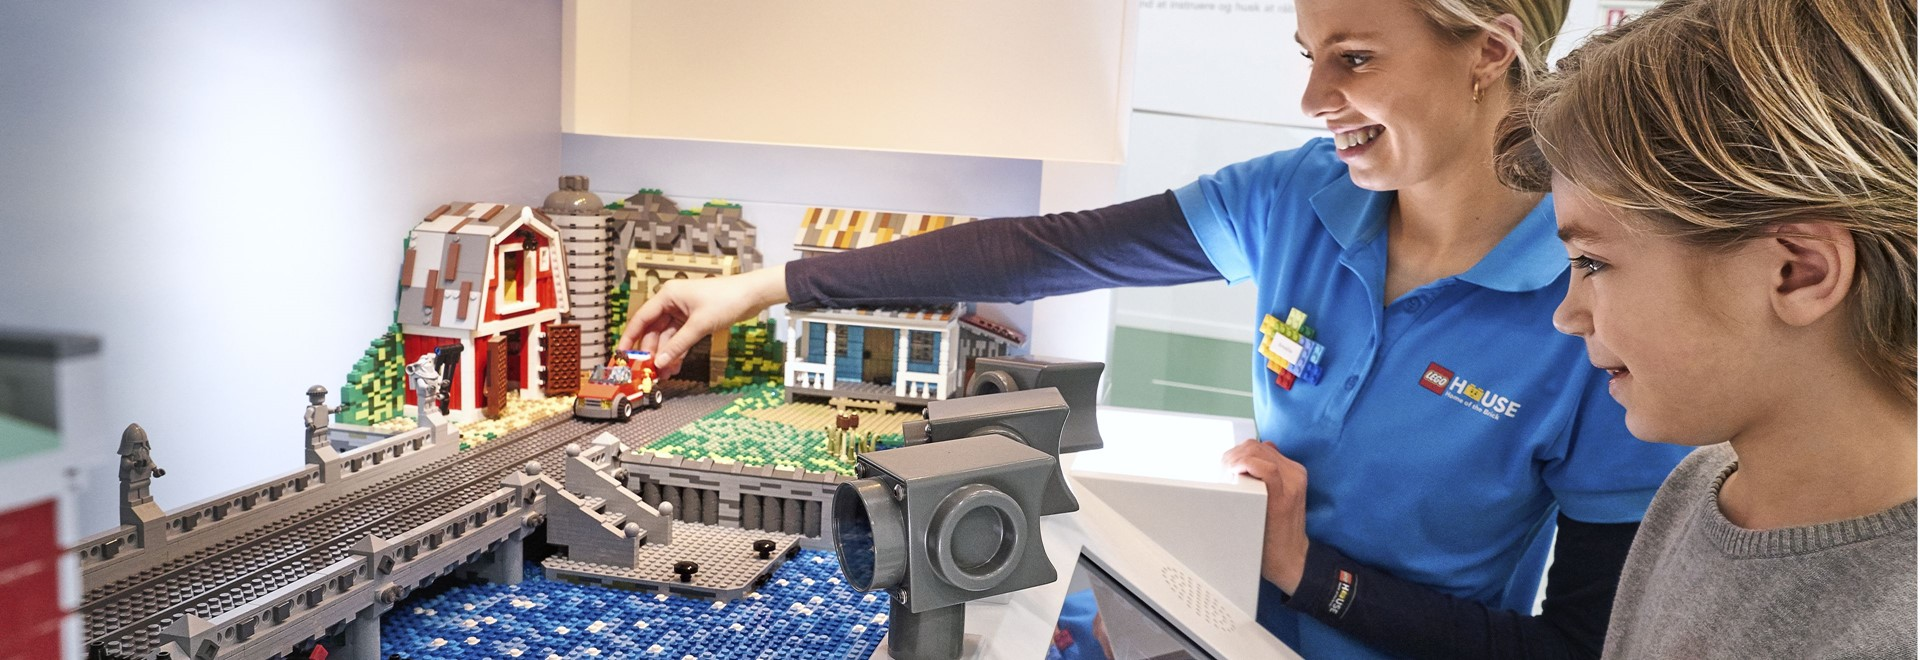 Oplevelser i LEGO House - Green Zone